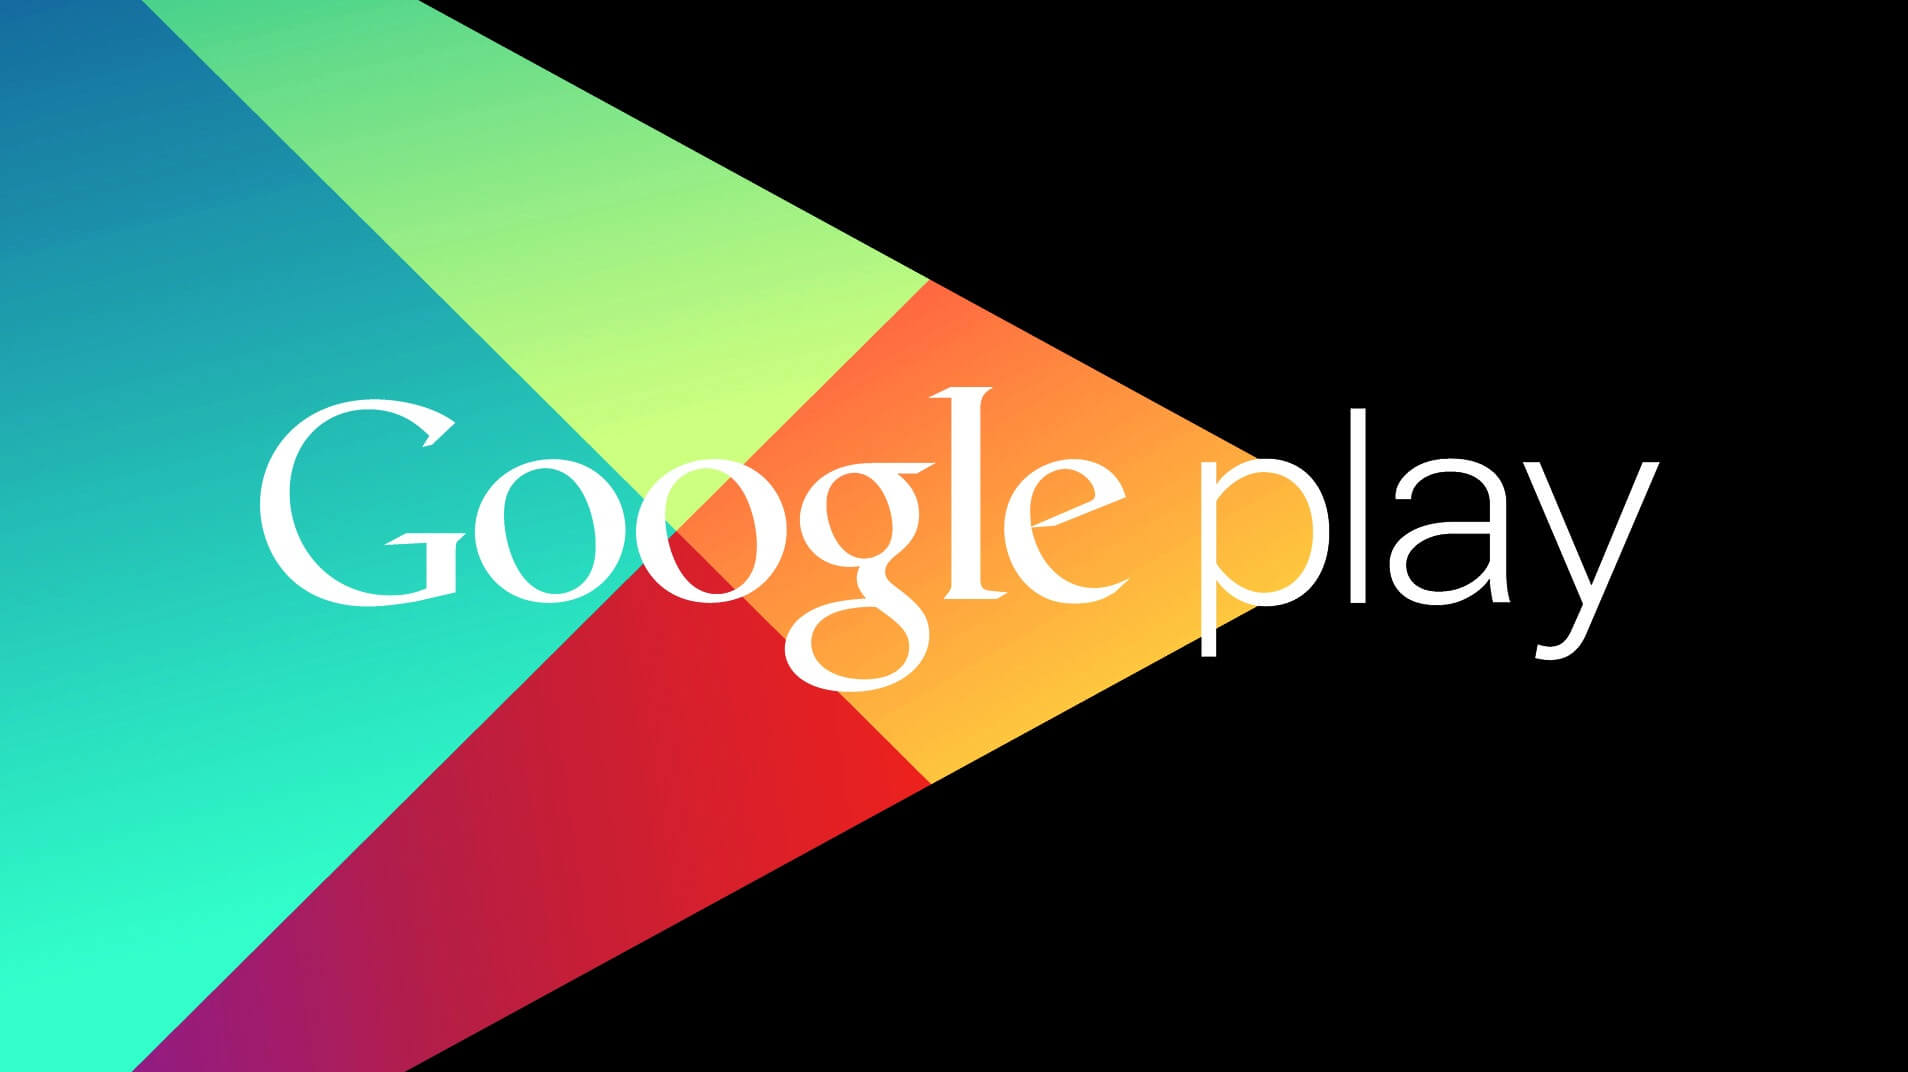 Google play store updates